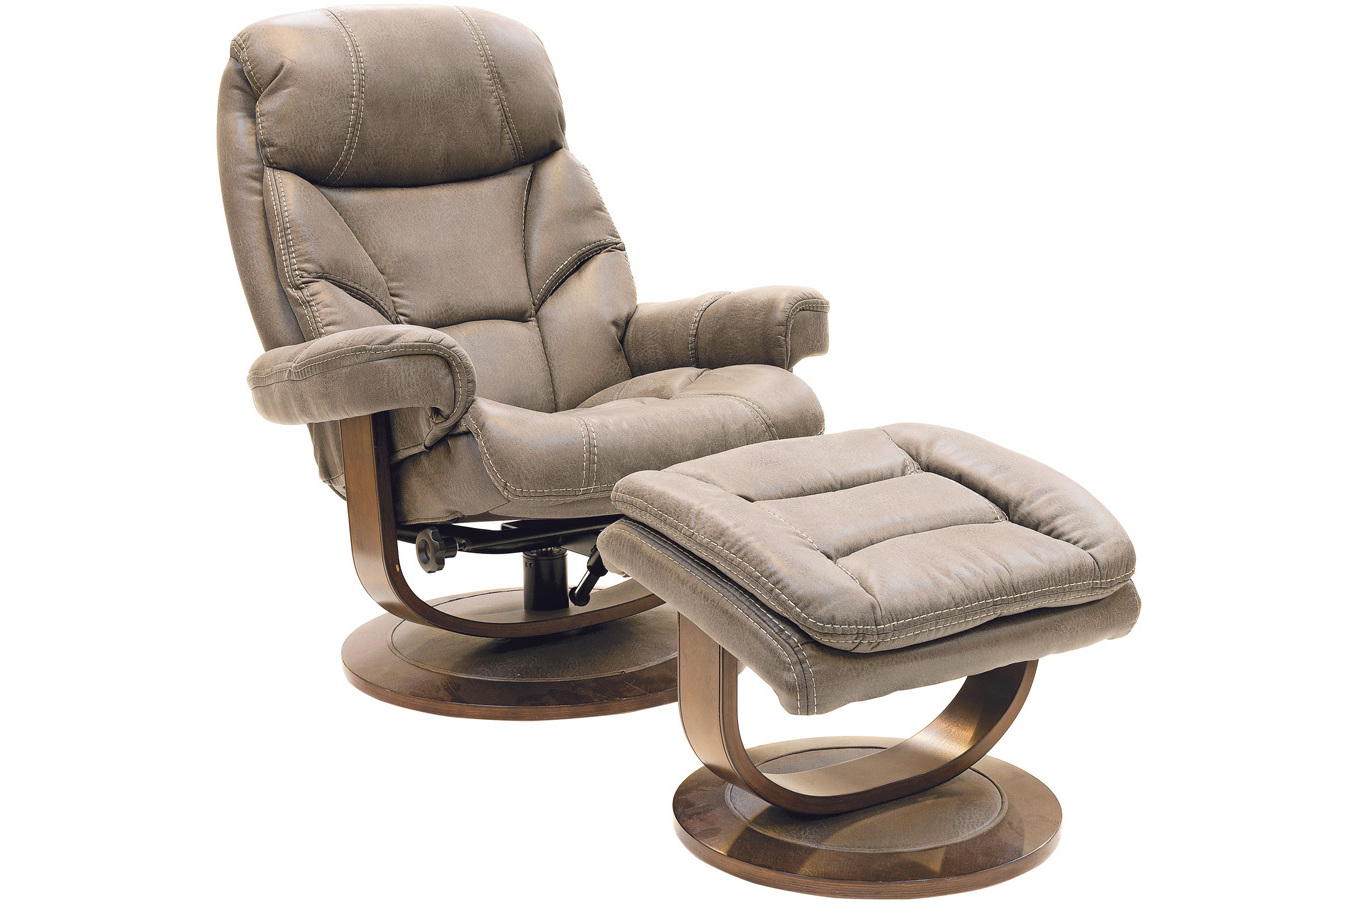 Cayenne Swivel Recliner with Footstool   Ireland